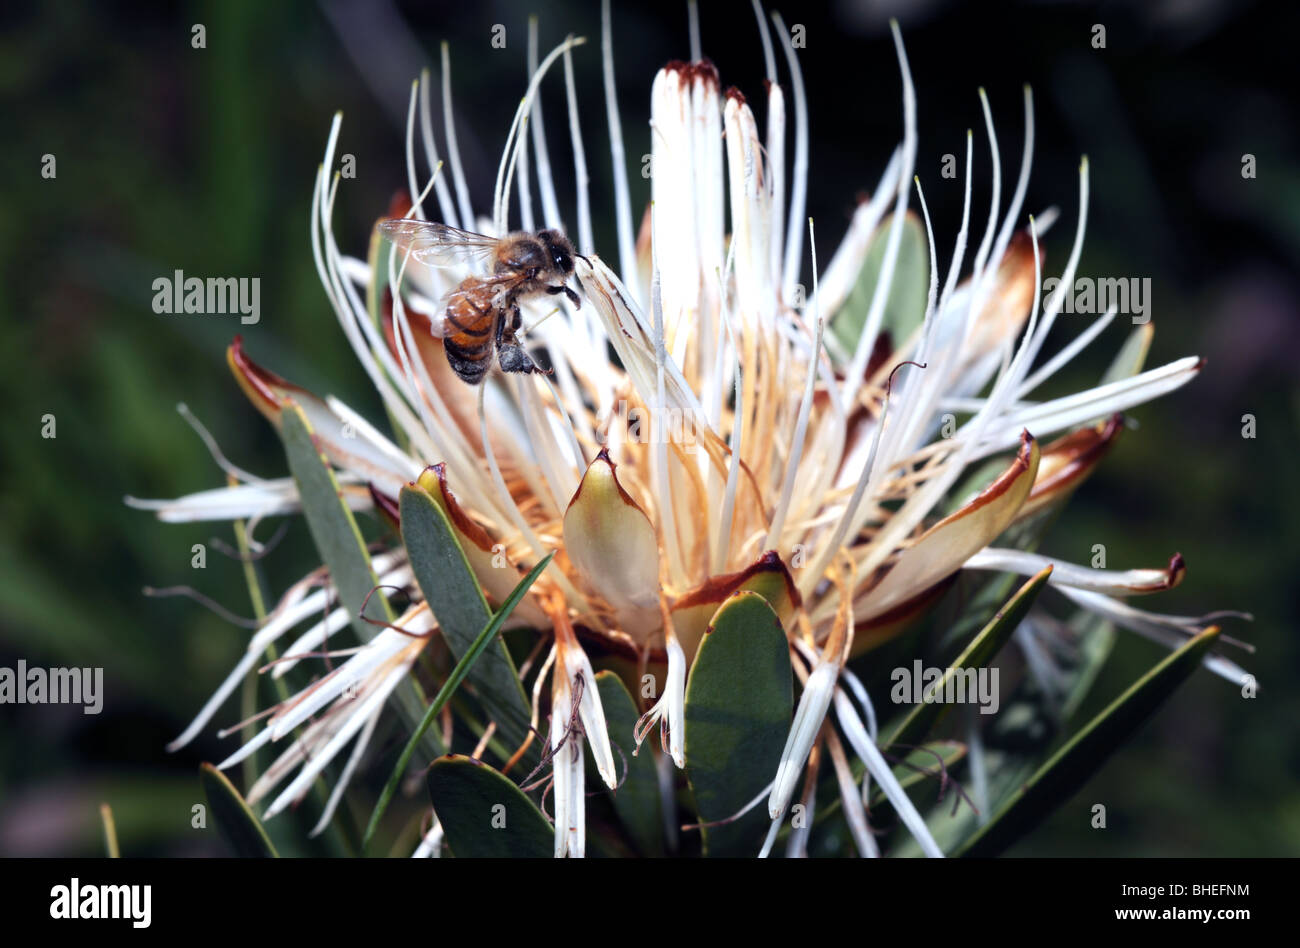 Honey Bee collecting pollen from Protea flower, large pollen sacs- Apis mellifera - Stock Image